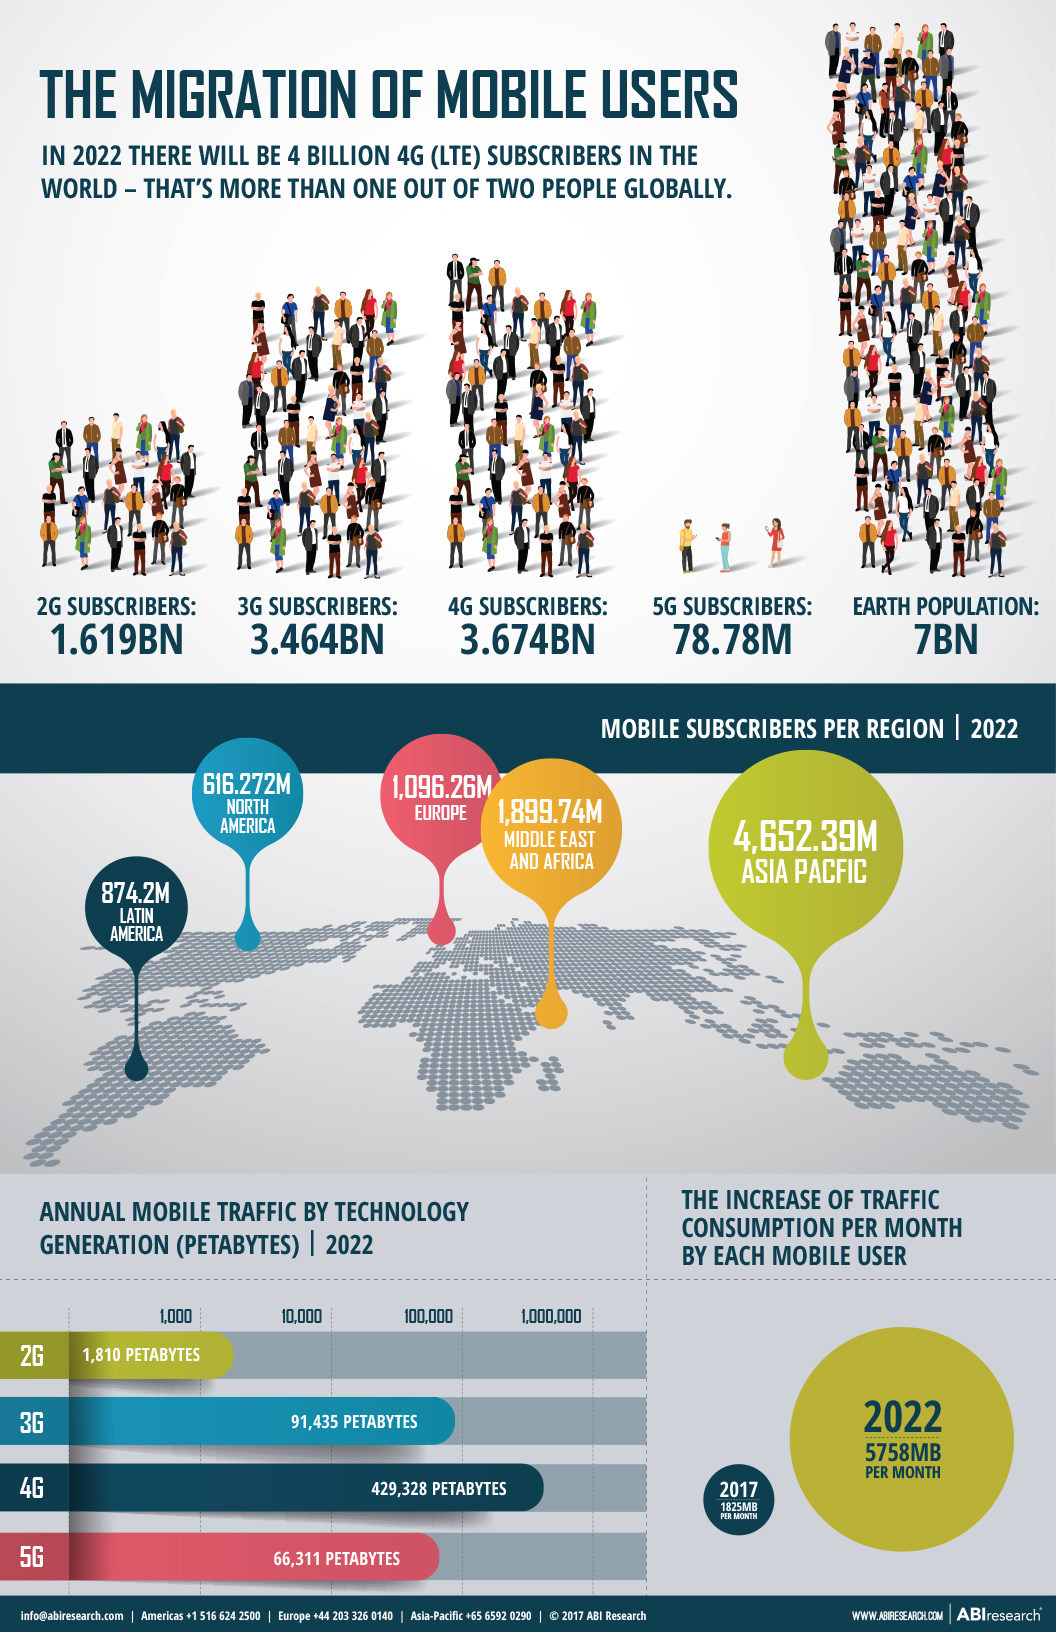 The Migration of Mobile Users; Source: ABI Research